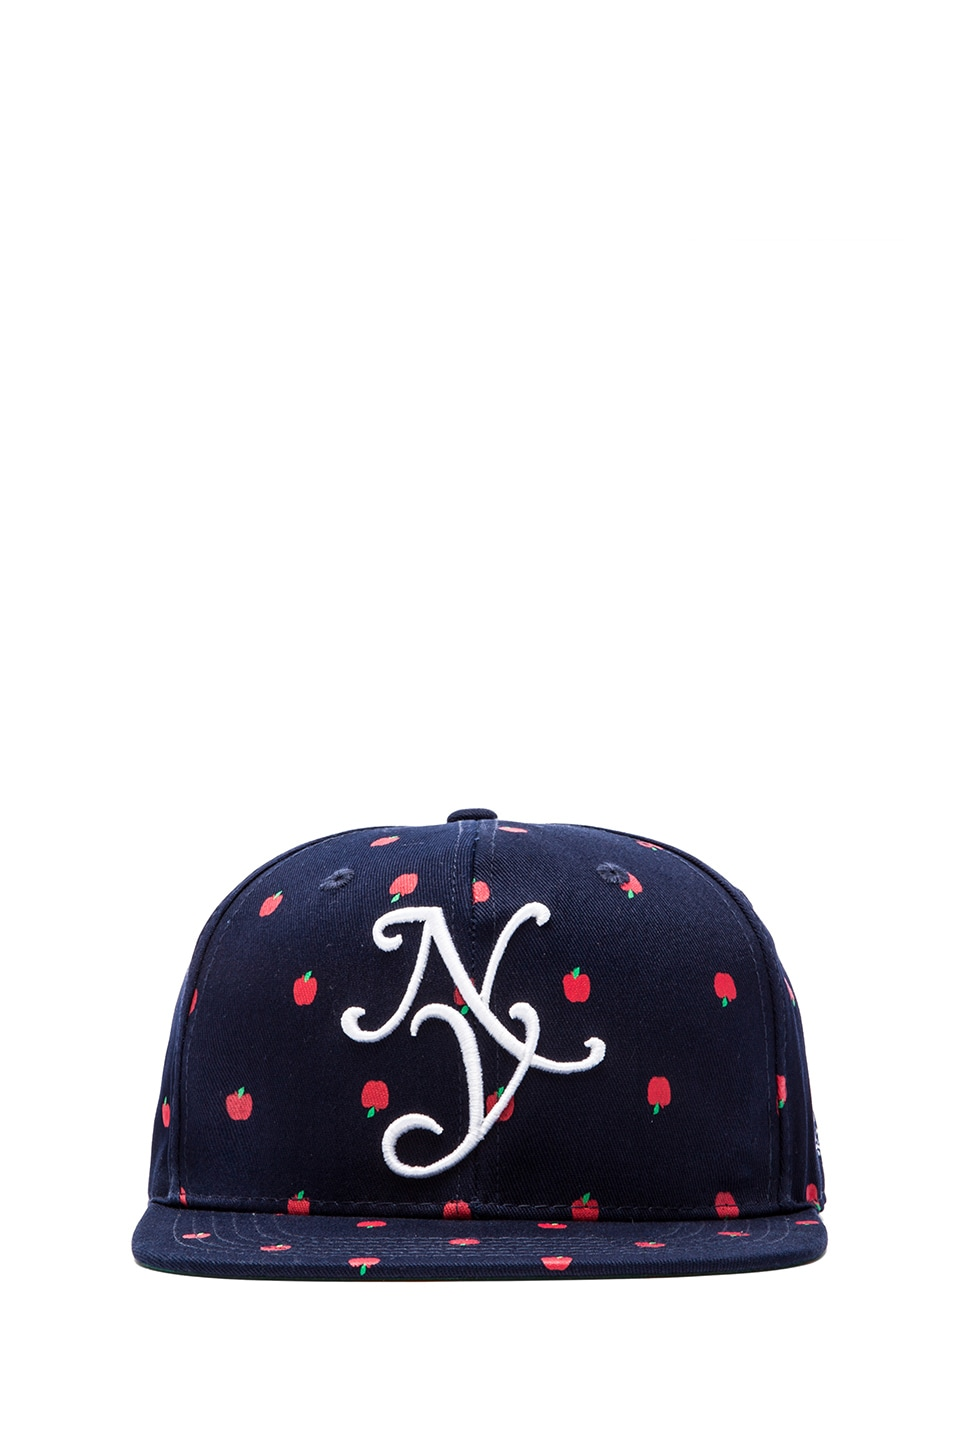 40 OZ NY Apples Cap in Navy